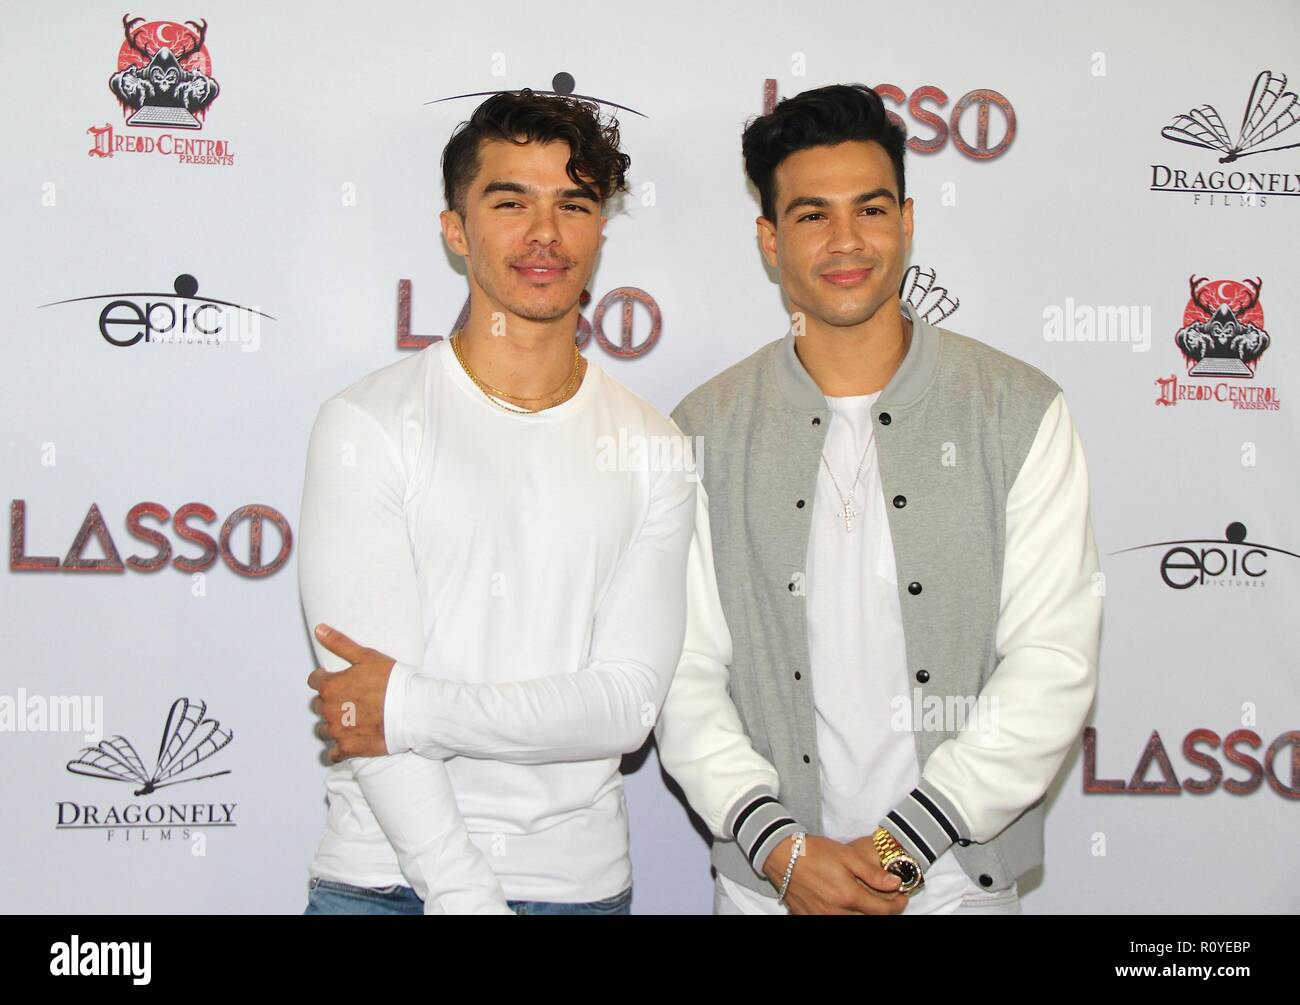 Hollywood, California, USA. 6th Nov, 2018. I16016CHW.Dread Central Presents The Premiere Of 'LASSO' .TCL Chinese 6 Theatres, Hollywood, California, USA .11/06/2018 .ANDREW JACOBS AND RAY DIAZ . © Clinton H.Wallace/Photomundo International/ Photos Inc Credit: Clinton Wallace/Globe Photos/ZUMA Wire/Alamy Live News - Stock Image